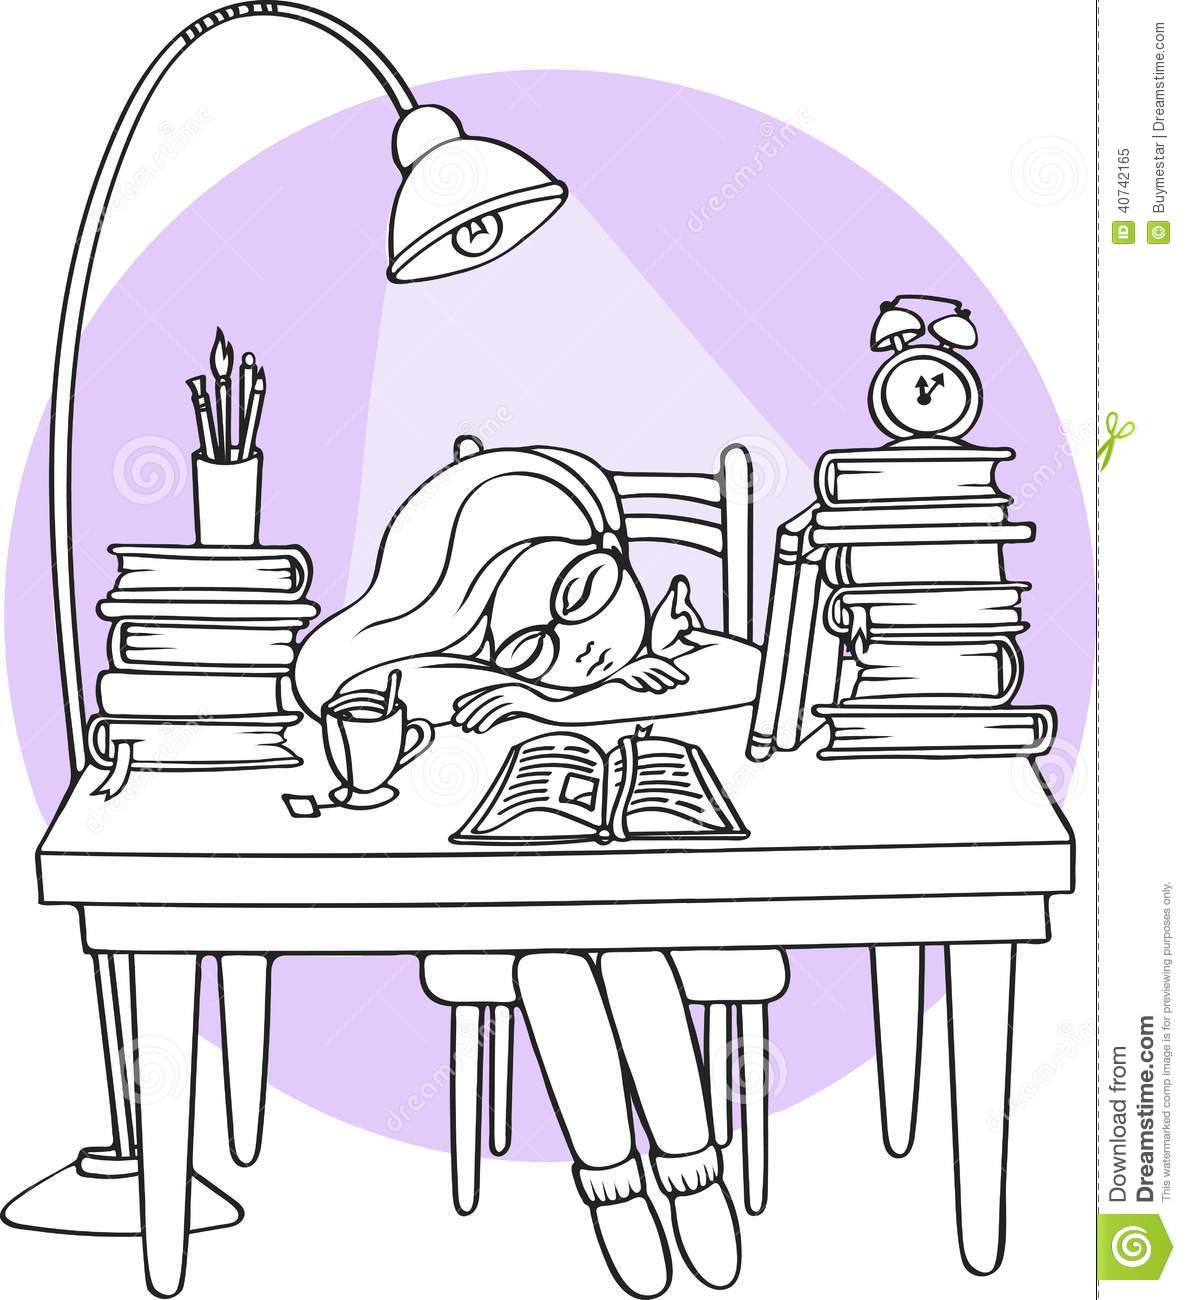 Smart Girl Studying At Night Sleeping On The Desk With Books.